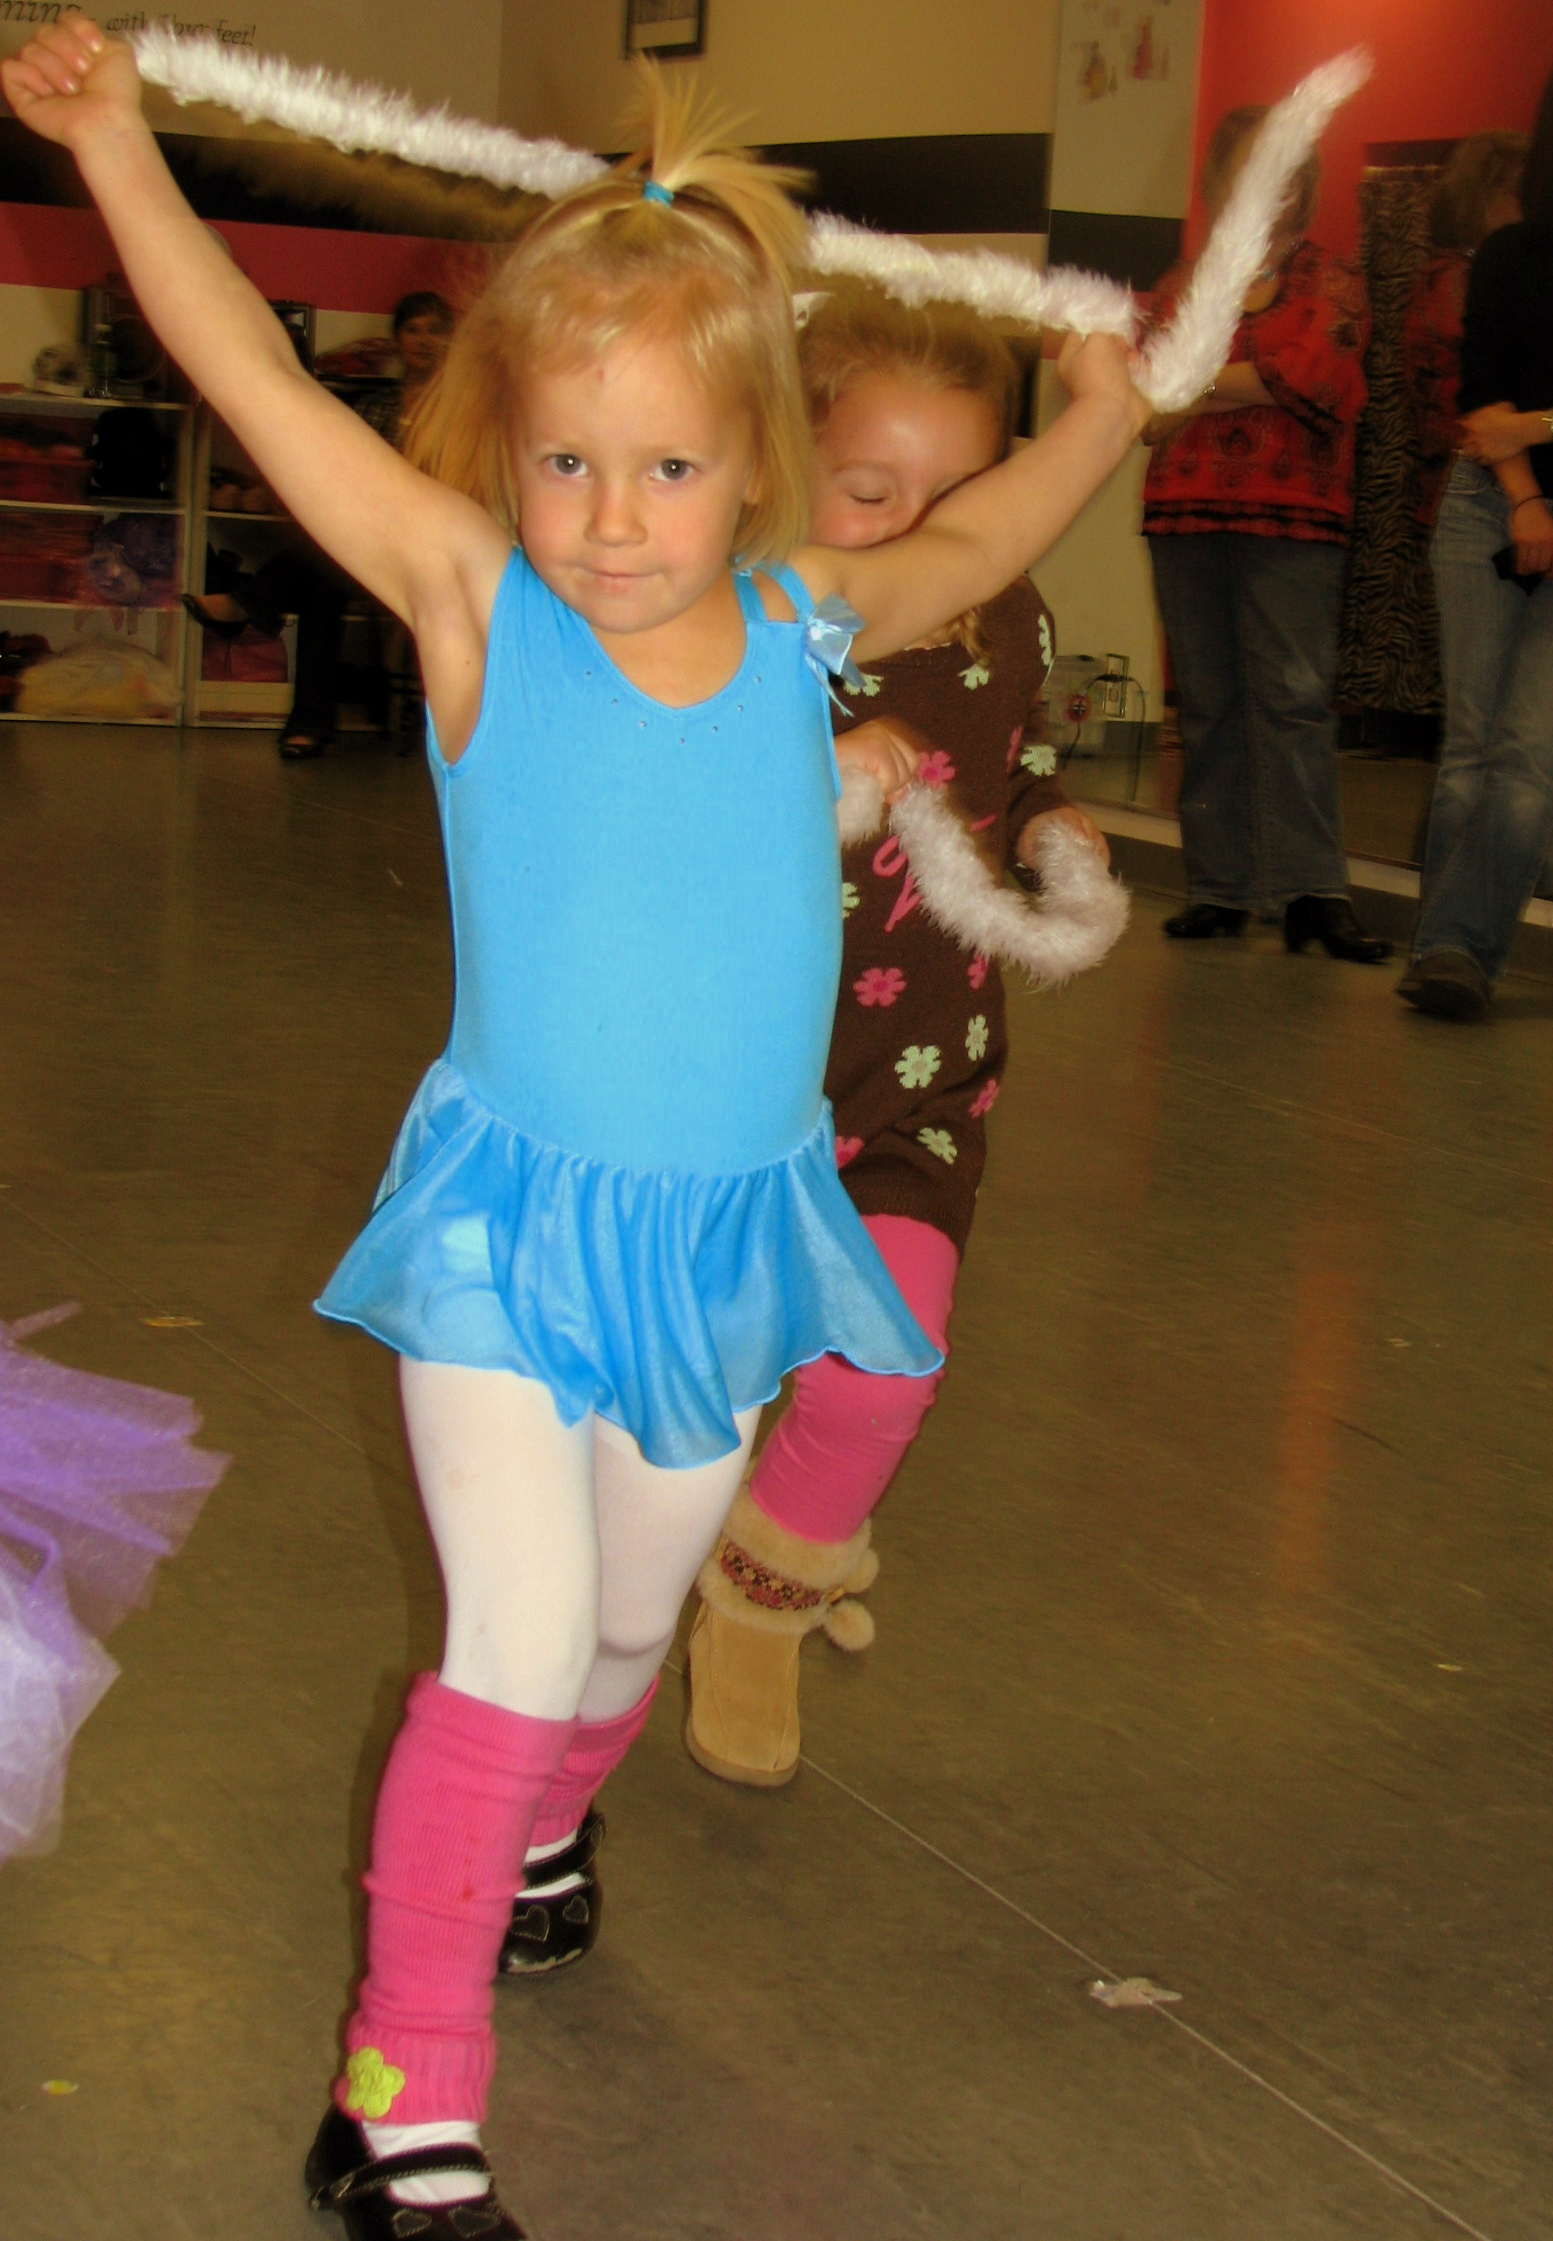 Shop for Little Girls Socks & Tights in Little Girls Clothing. Buy products such as No Show Socks, 10 Pairs (Little Girls & Big Girls) at Walmart and save.